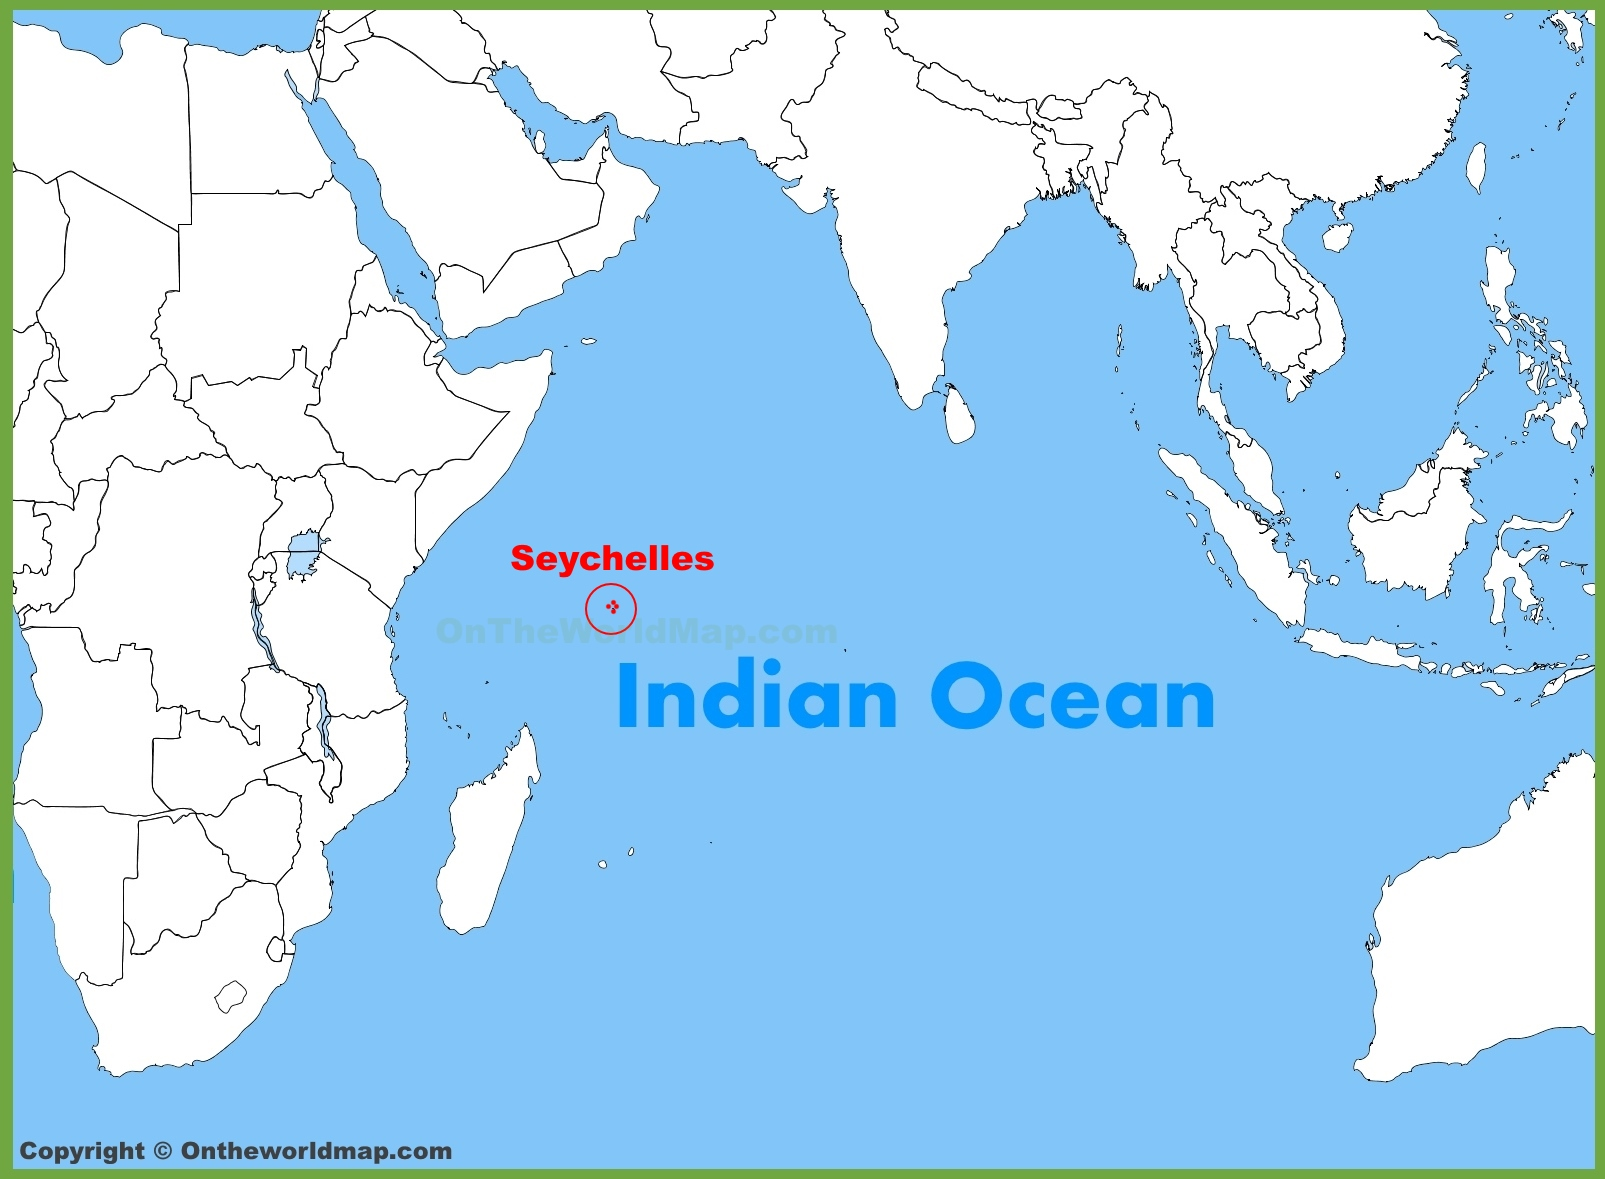 Seychelles location on the Indian Ocean map